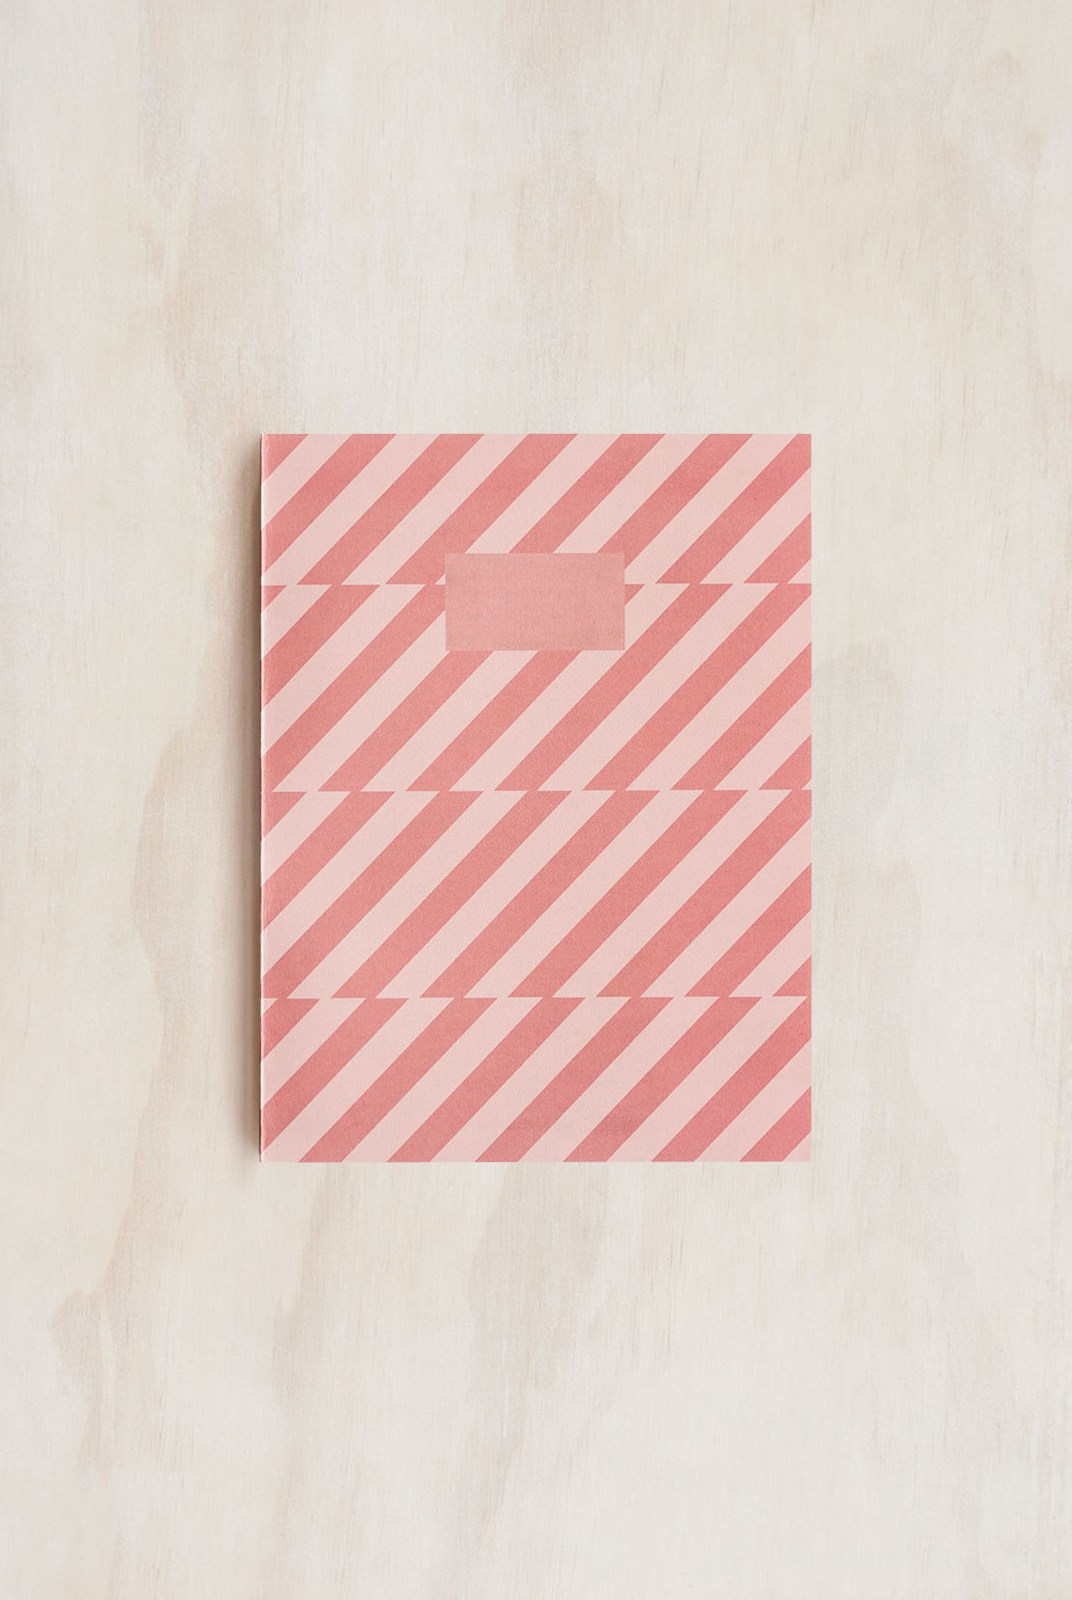 O-Check Design Graphics - Exercise Book - Ruled - Medium - Pattern Pink